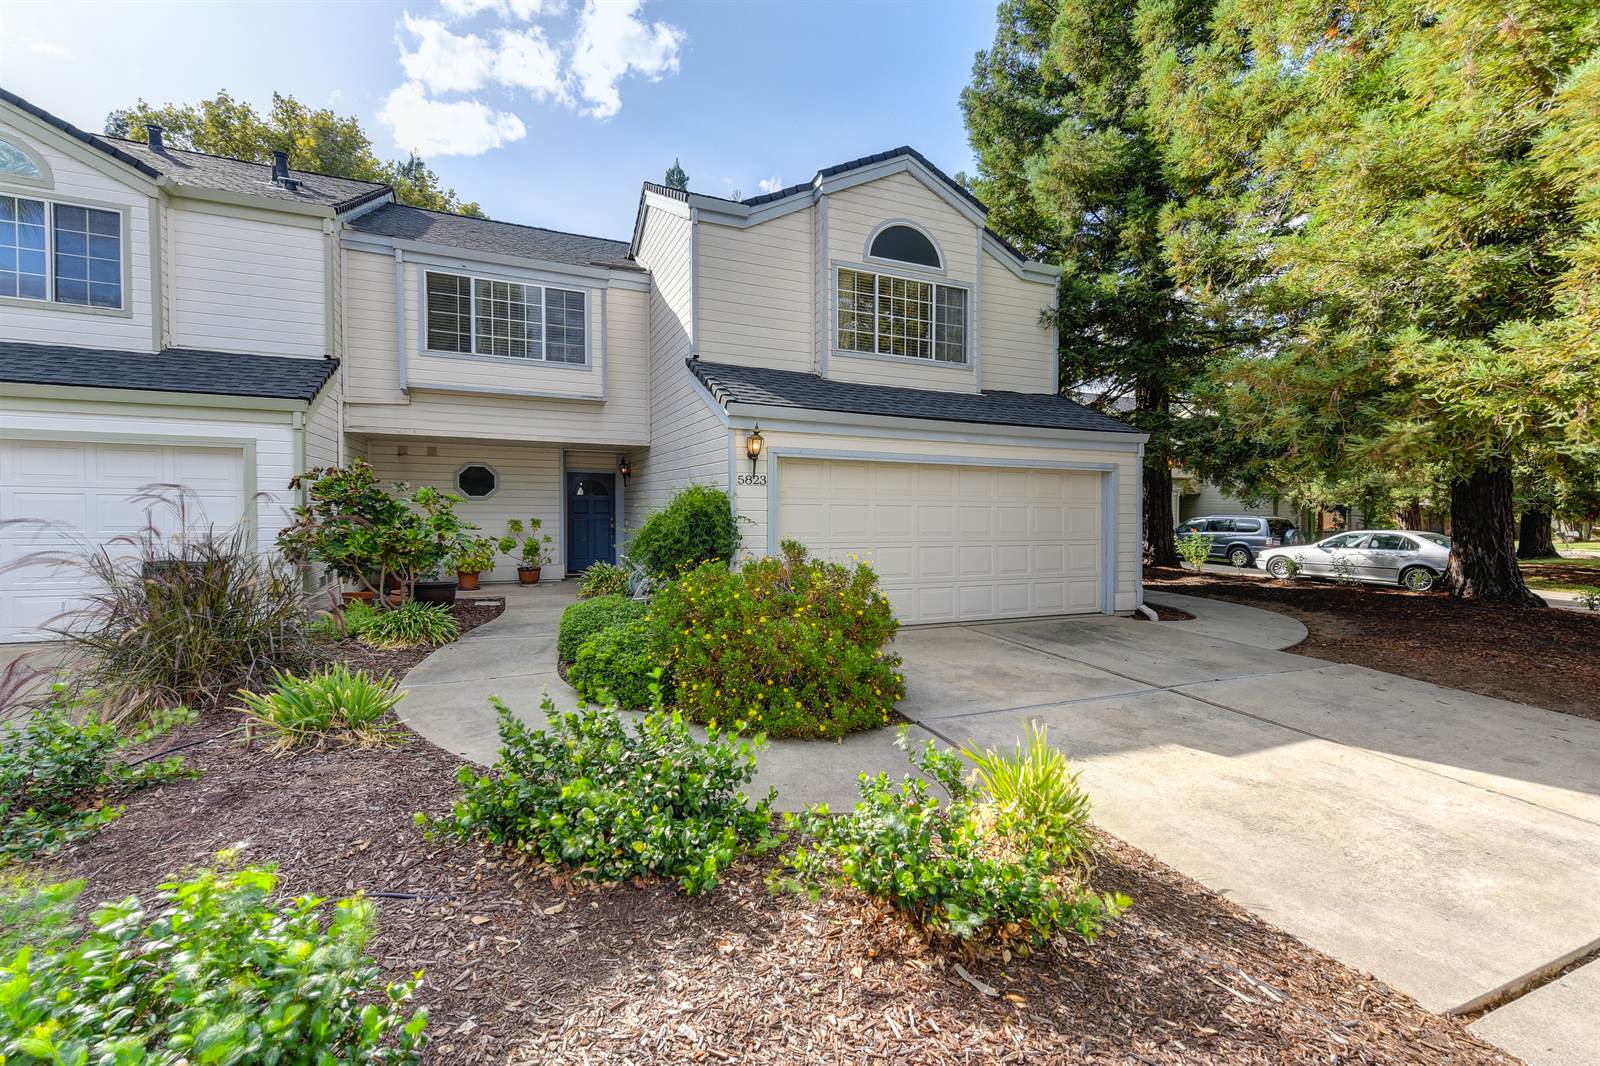 5823 Shelldrake Ct, Fair Oaks, CA 95628